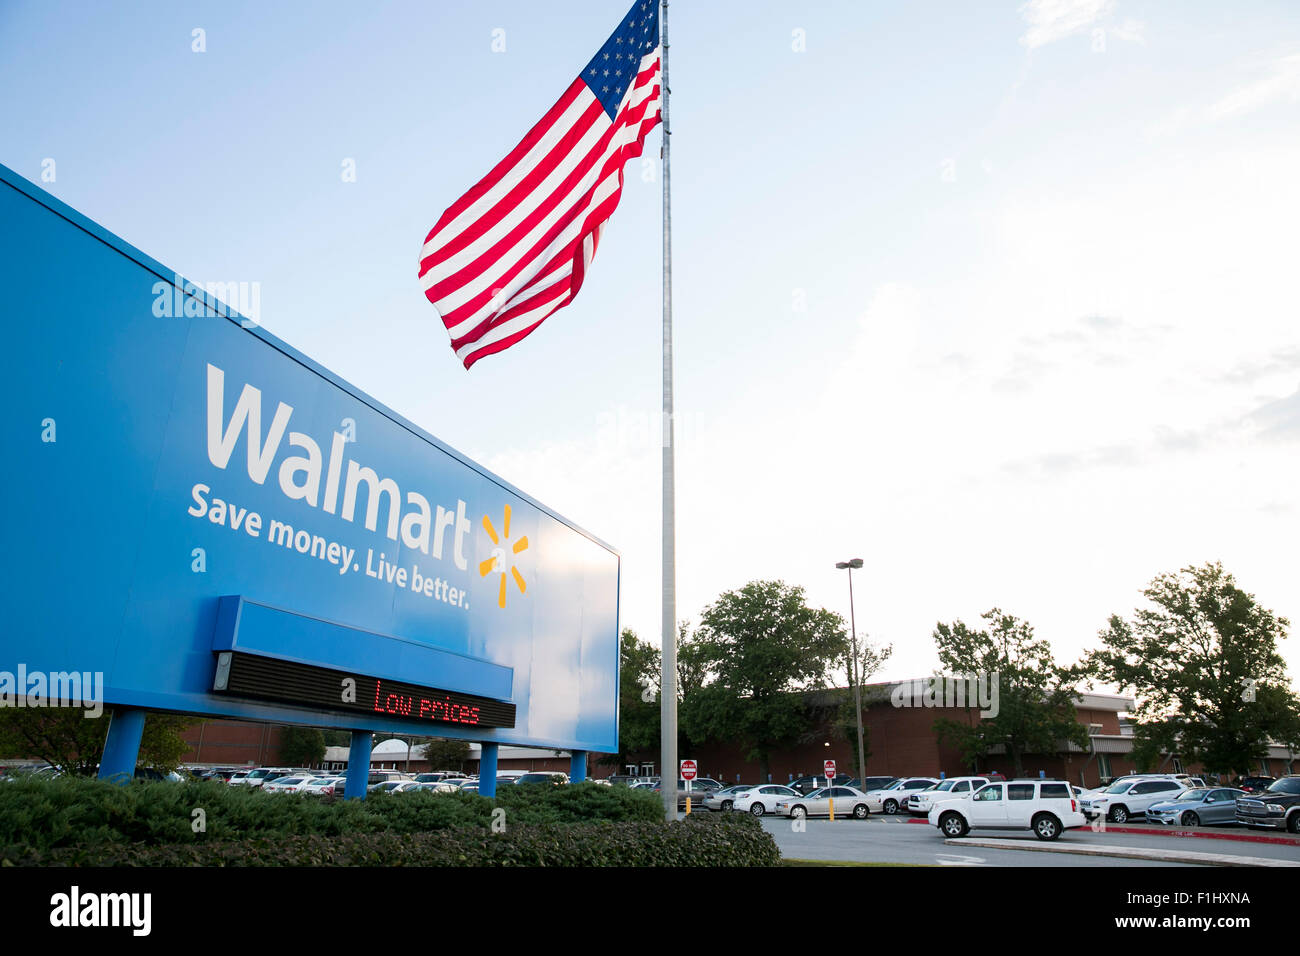 A logo sign outside of the Walmart headquarters, known as the Home Office in Bentonville, Arkansas on August 18, - Stock Image